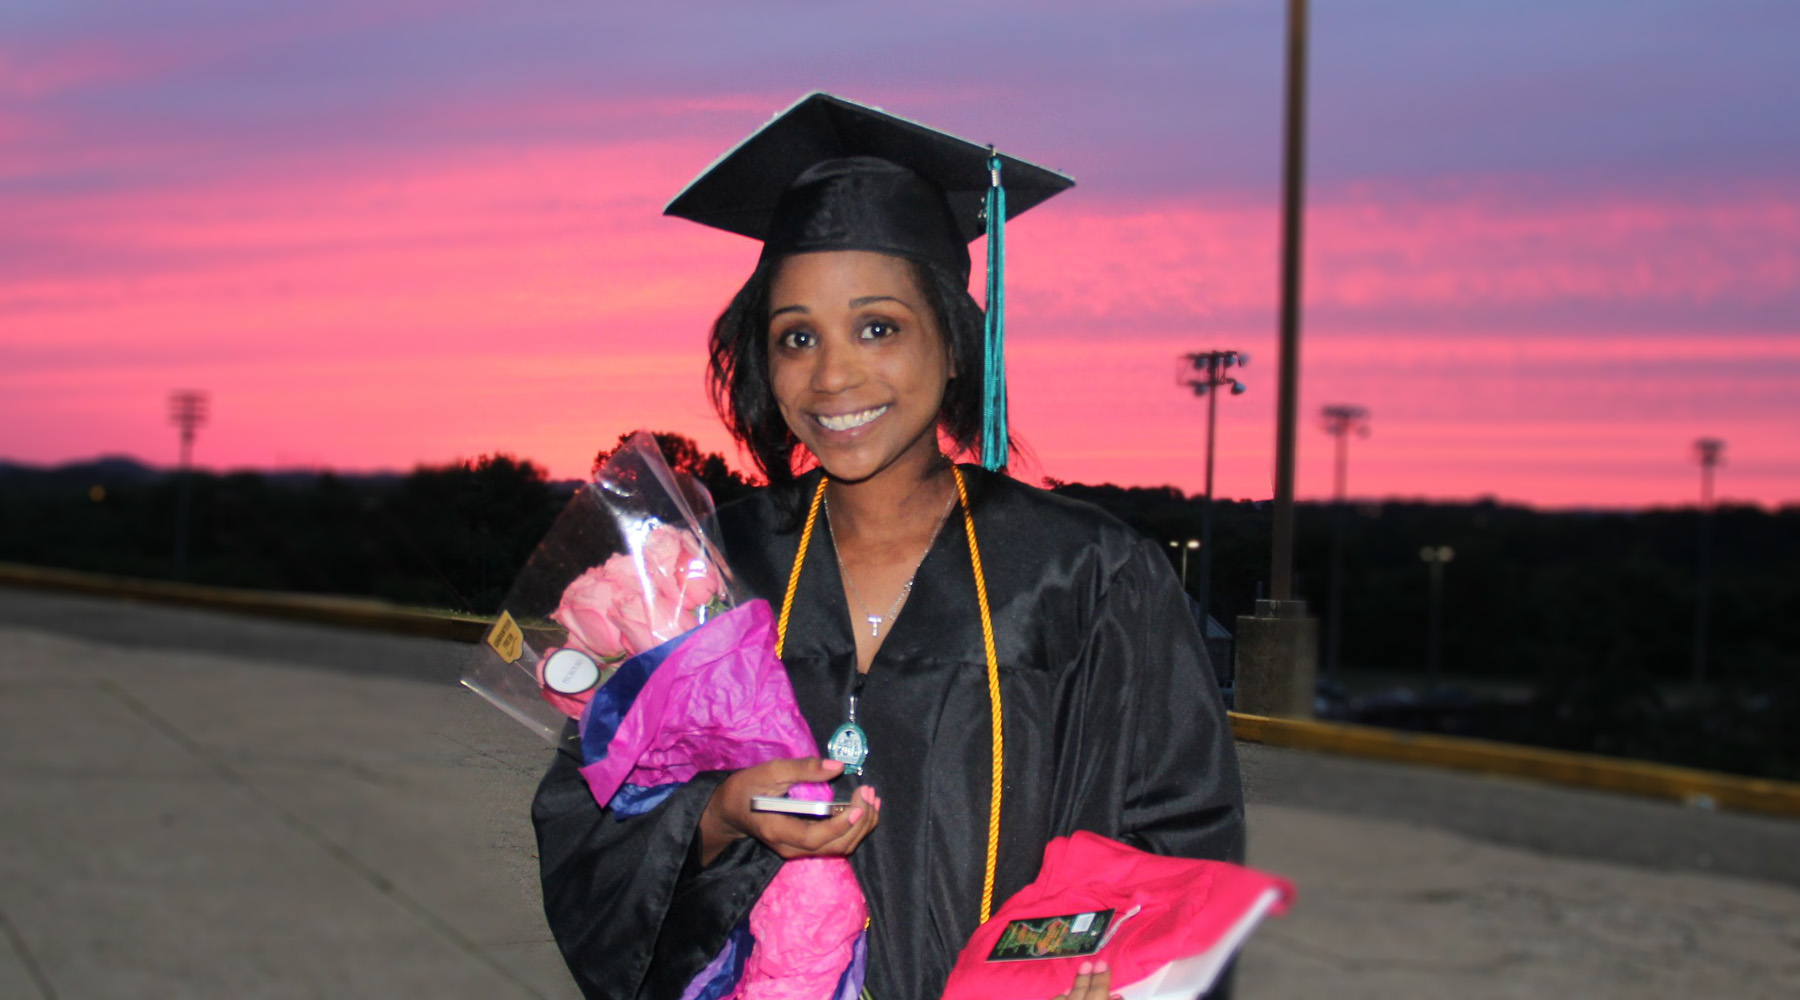 Graduate Holds Flowers After Graduation